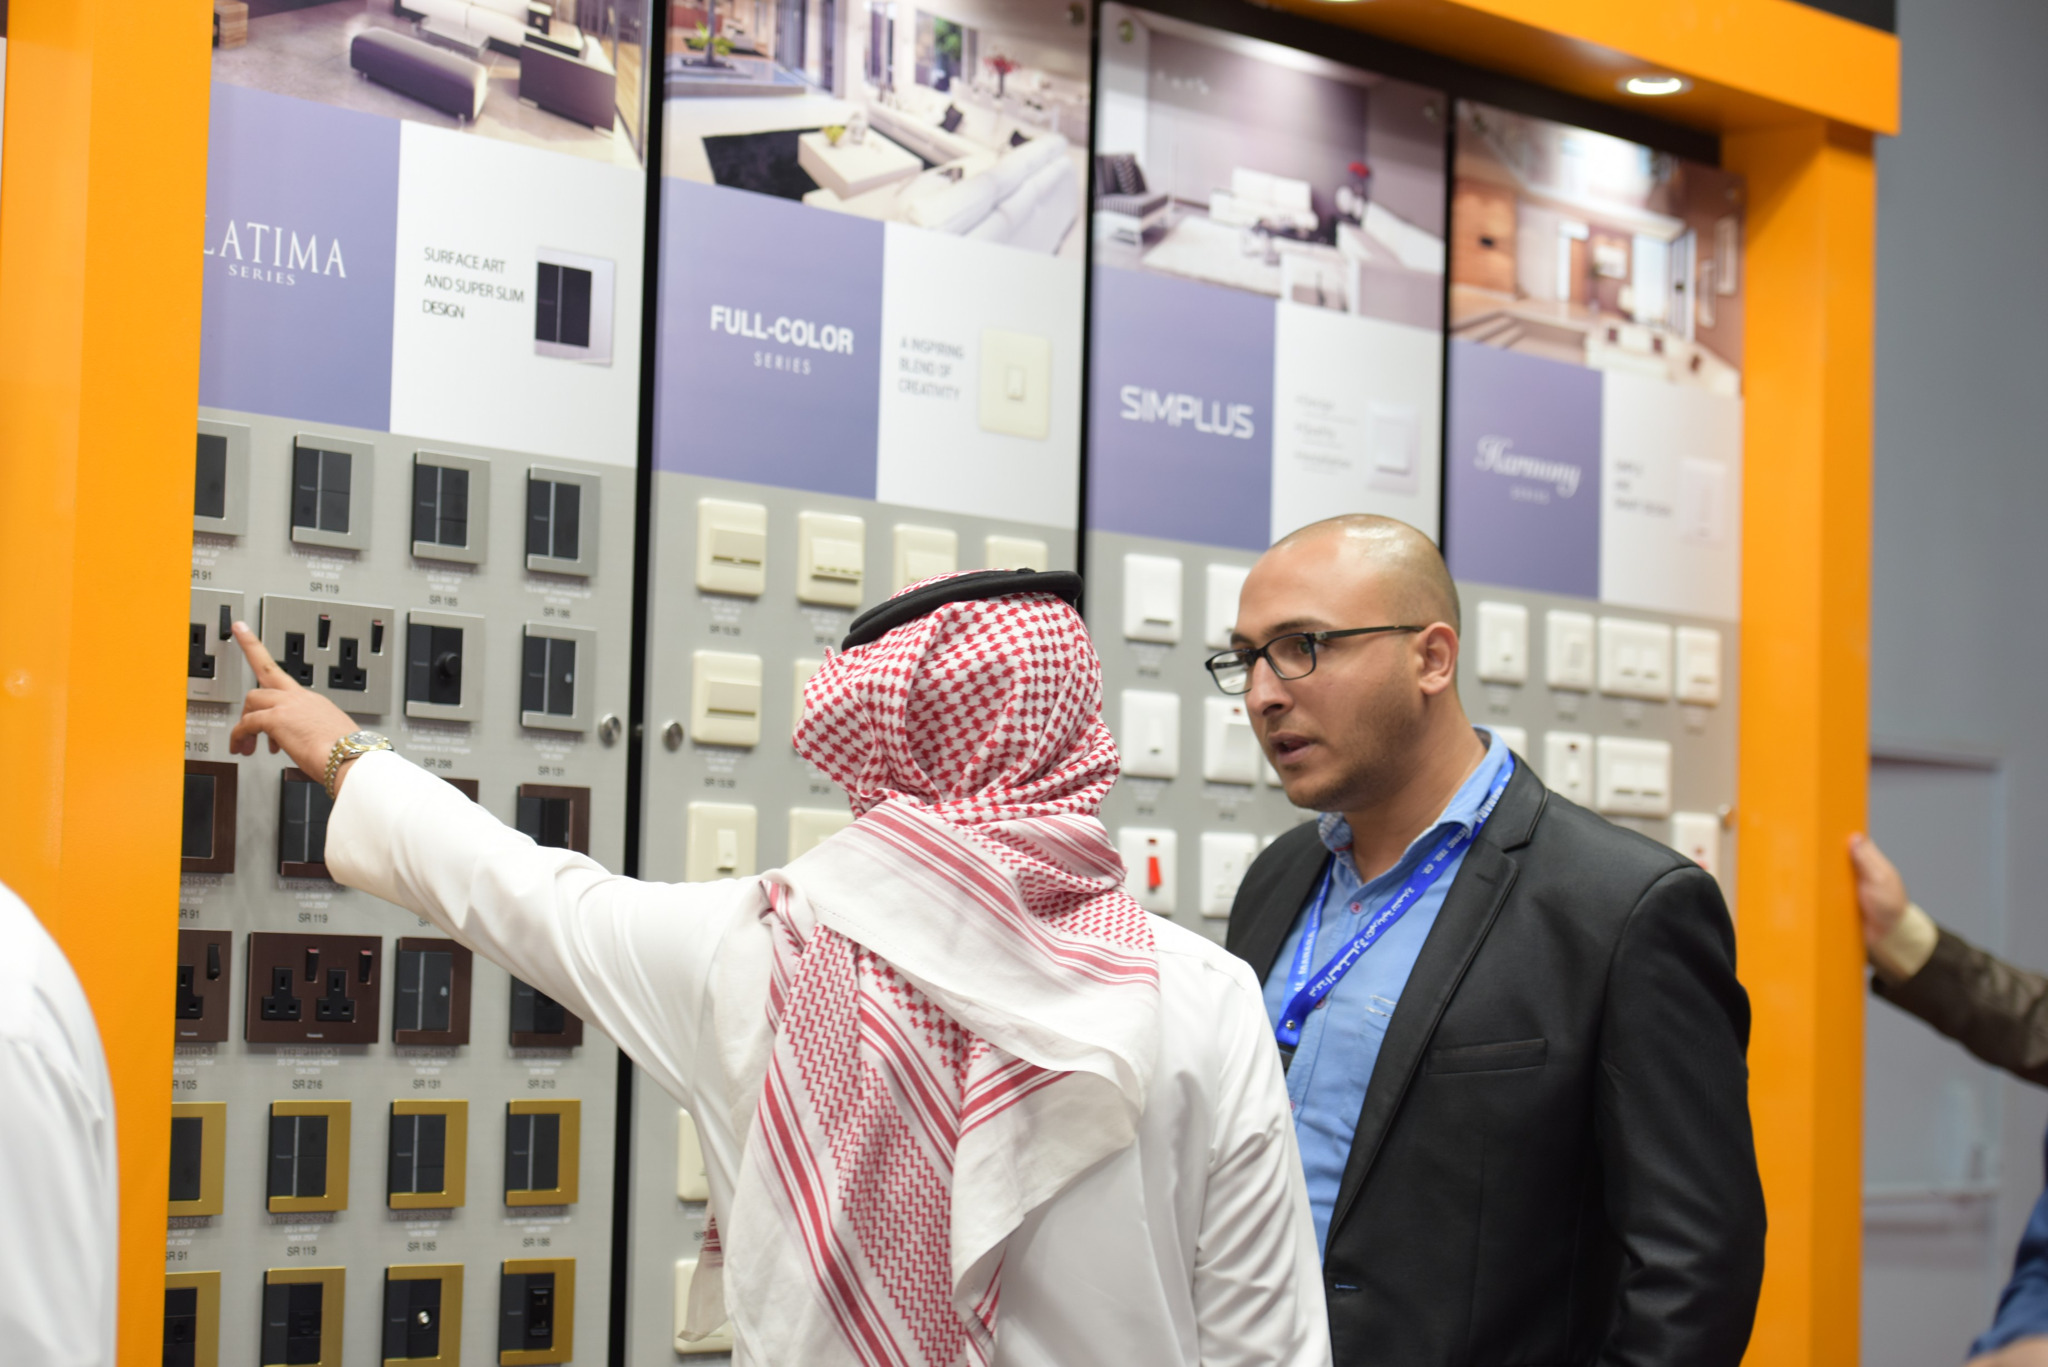 CONSTRUCTION INNOVATION ON SHOW IN JEDDAH AS SAUDI ARABIA'S